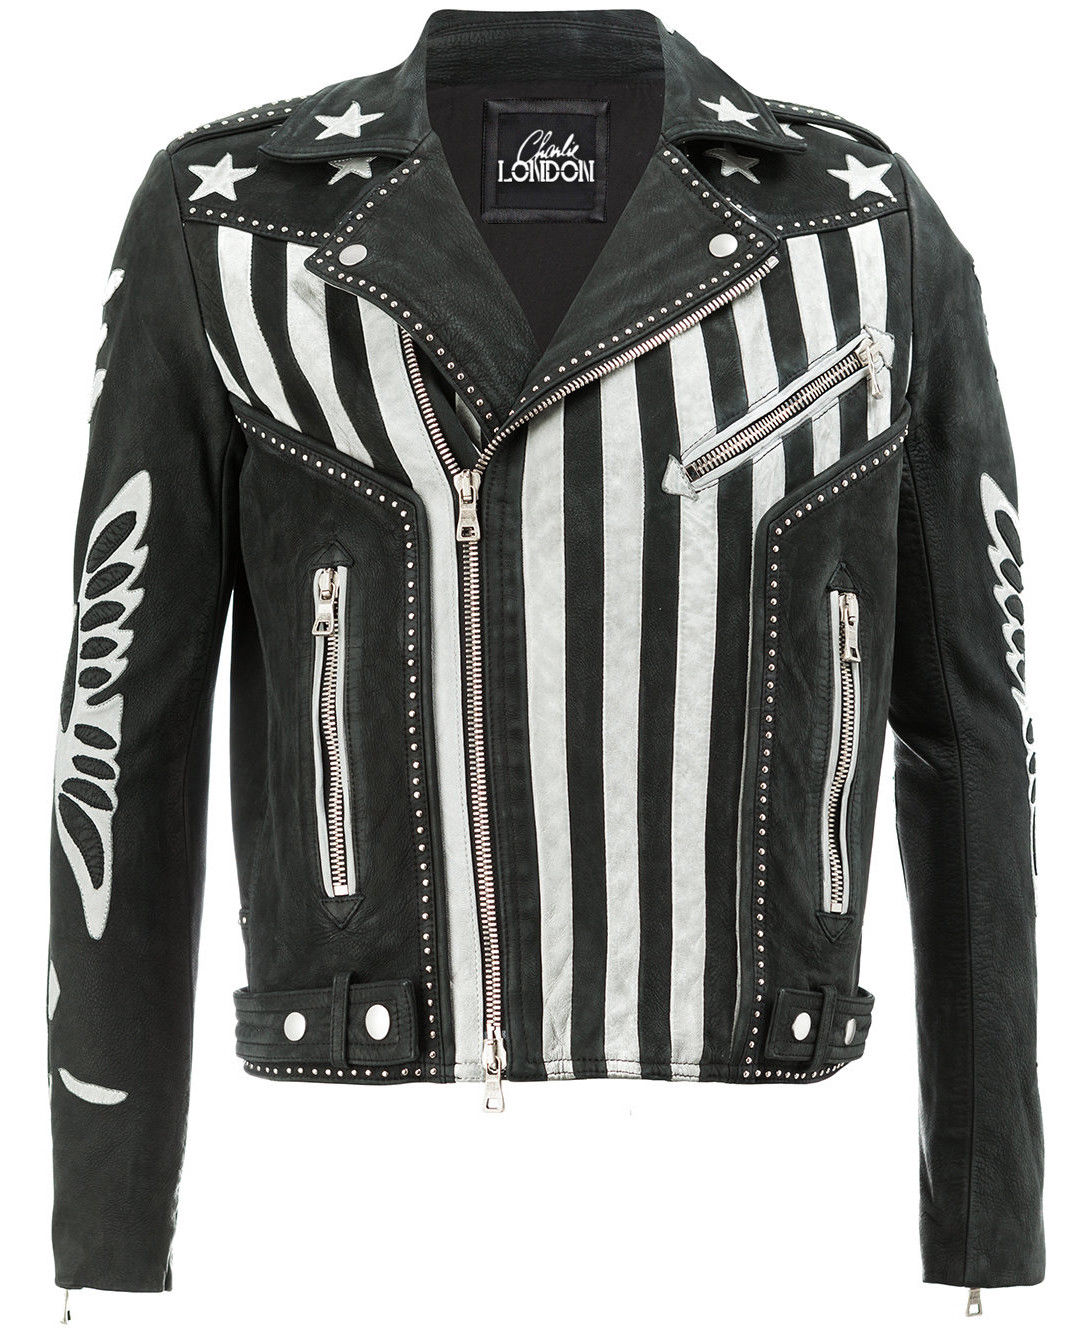 Mens American Flag Print Designer Leather Jackets 01.jpg